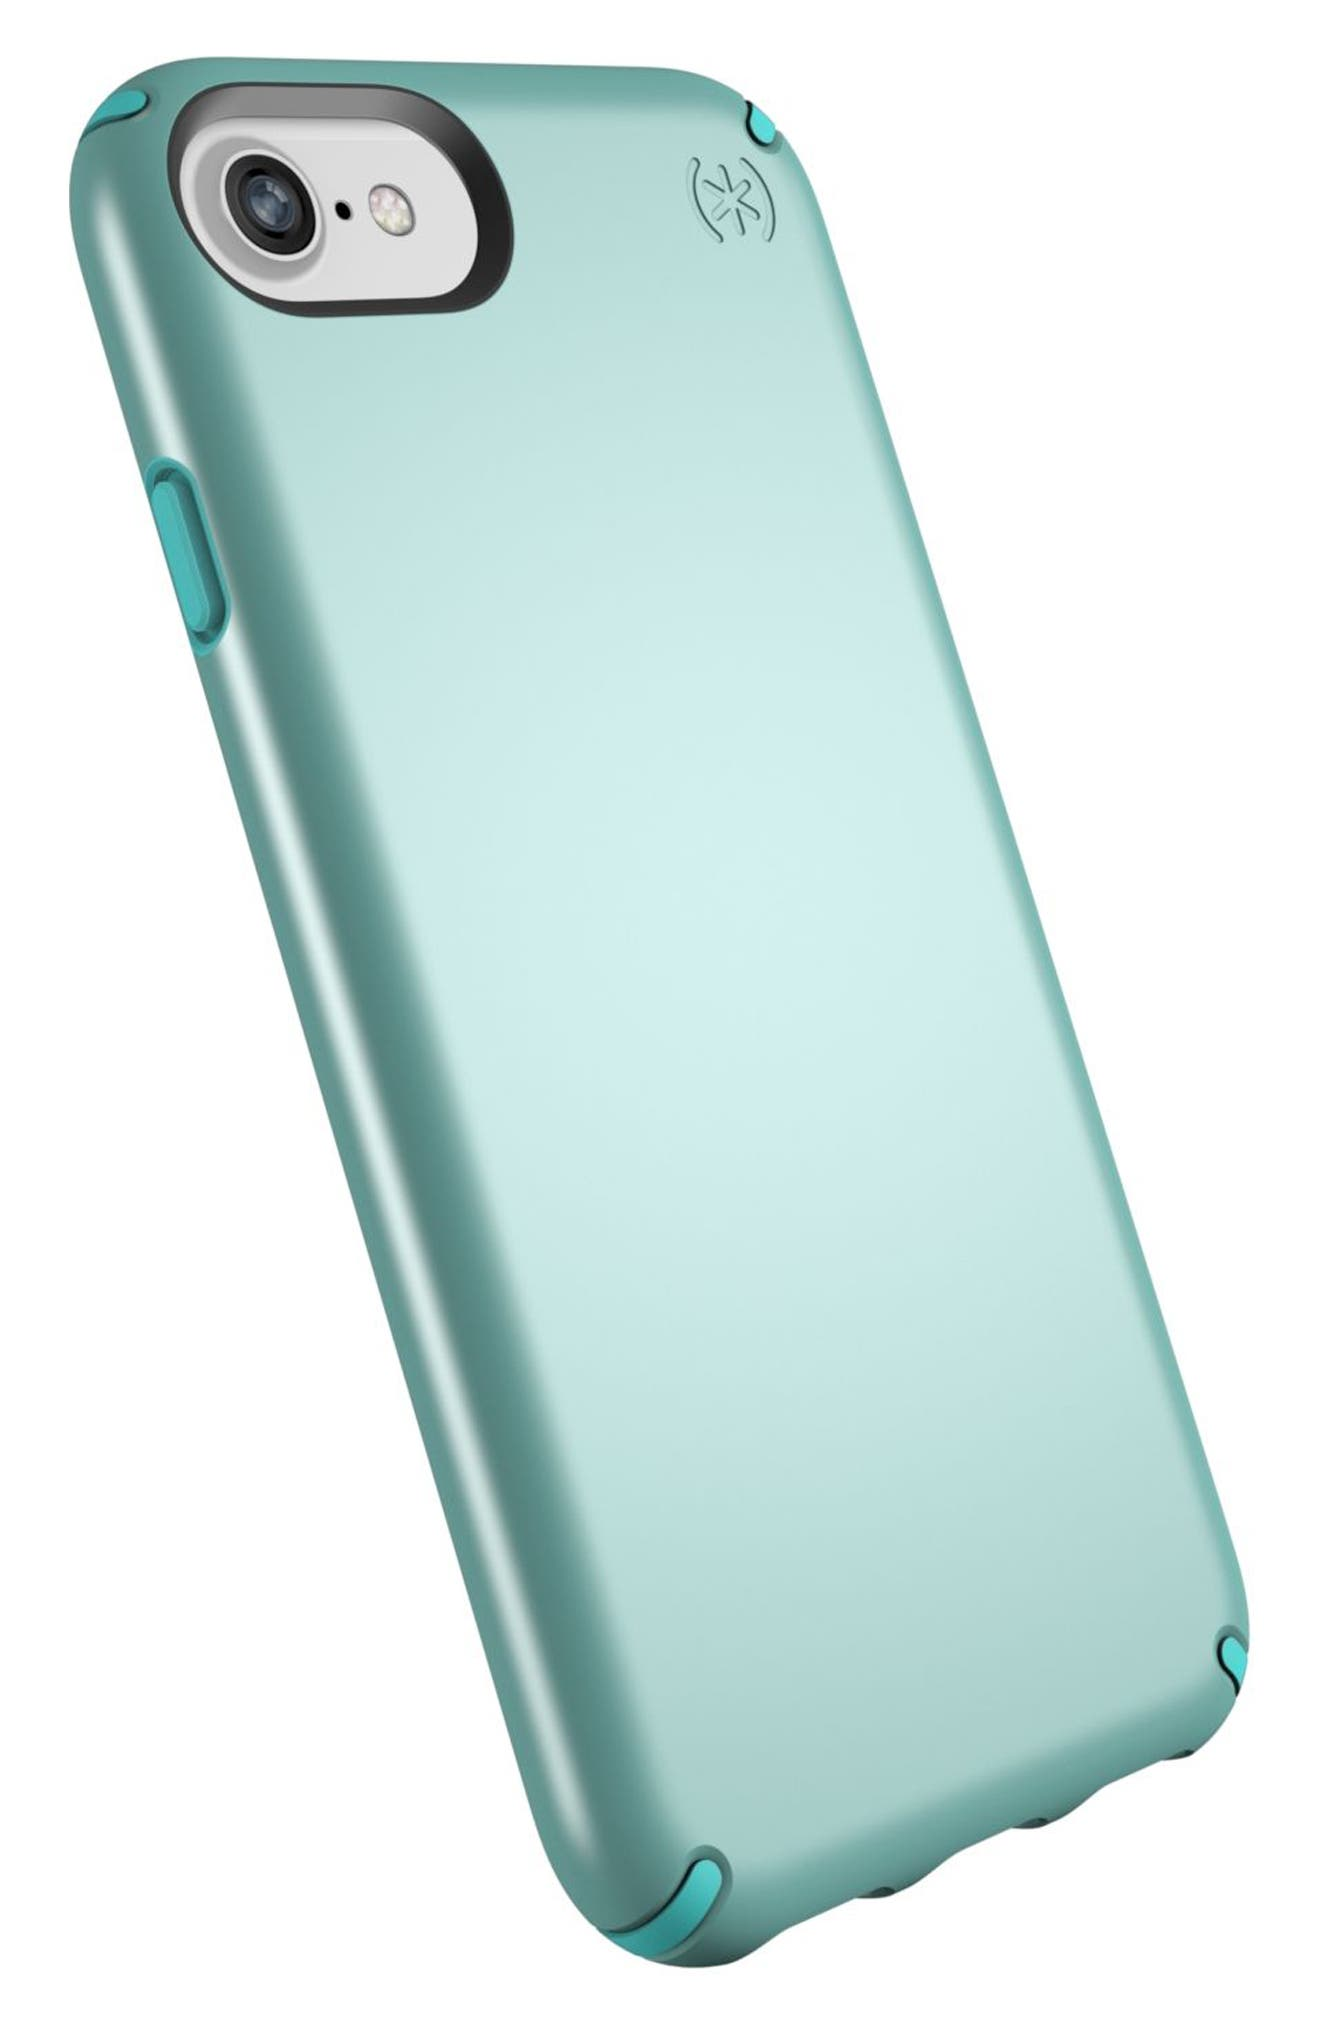 iPhone 6/6s/7/8 Case,                             Alternate thumbnail 3, color,                             Peppermint Green/ Teal